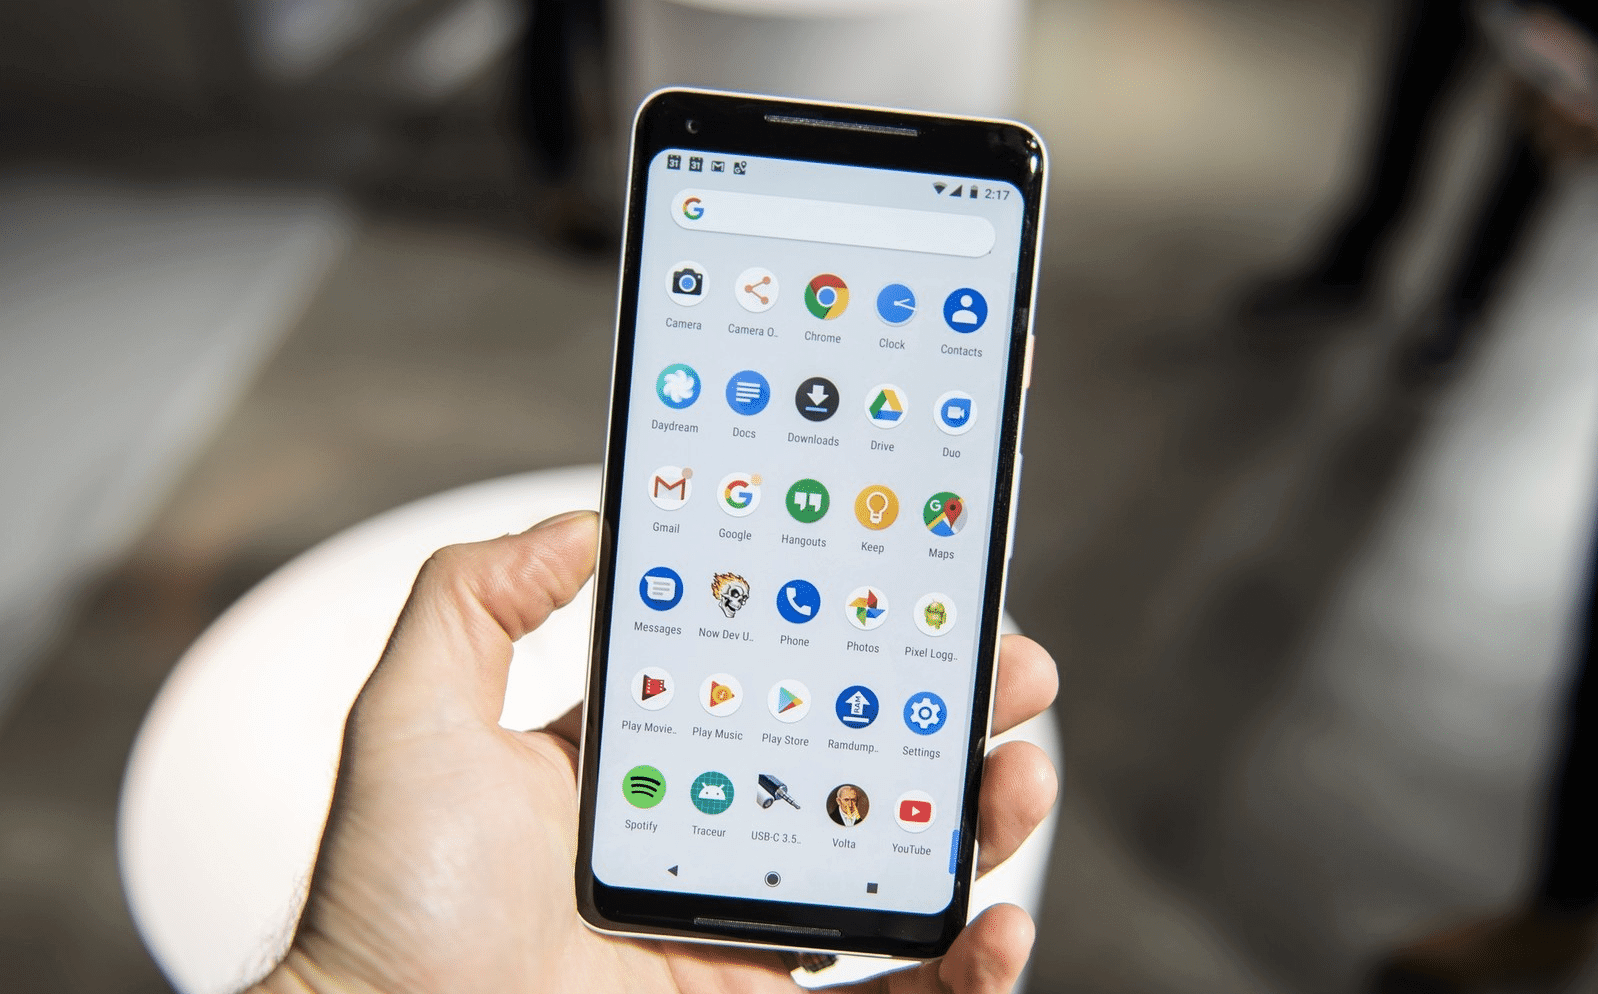 Install Android 8.0.1 Oreo Official Update on Google Pixel Devices 1